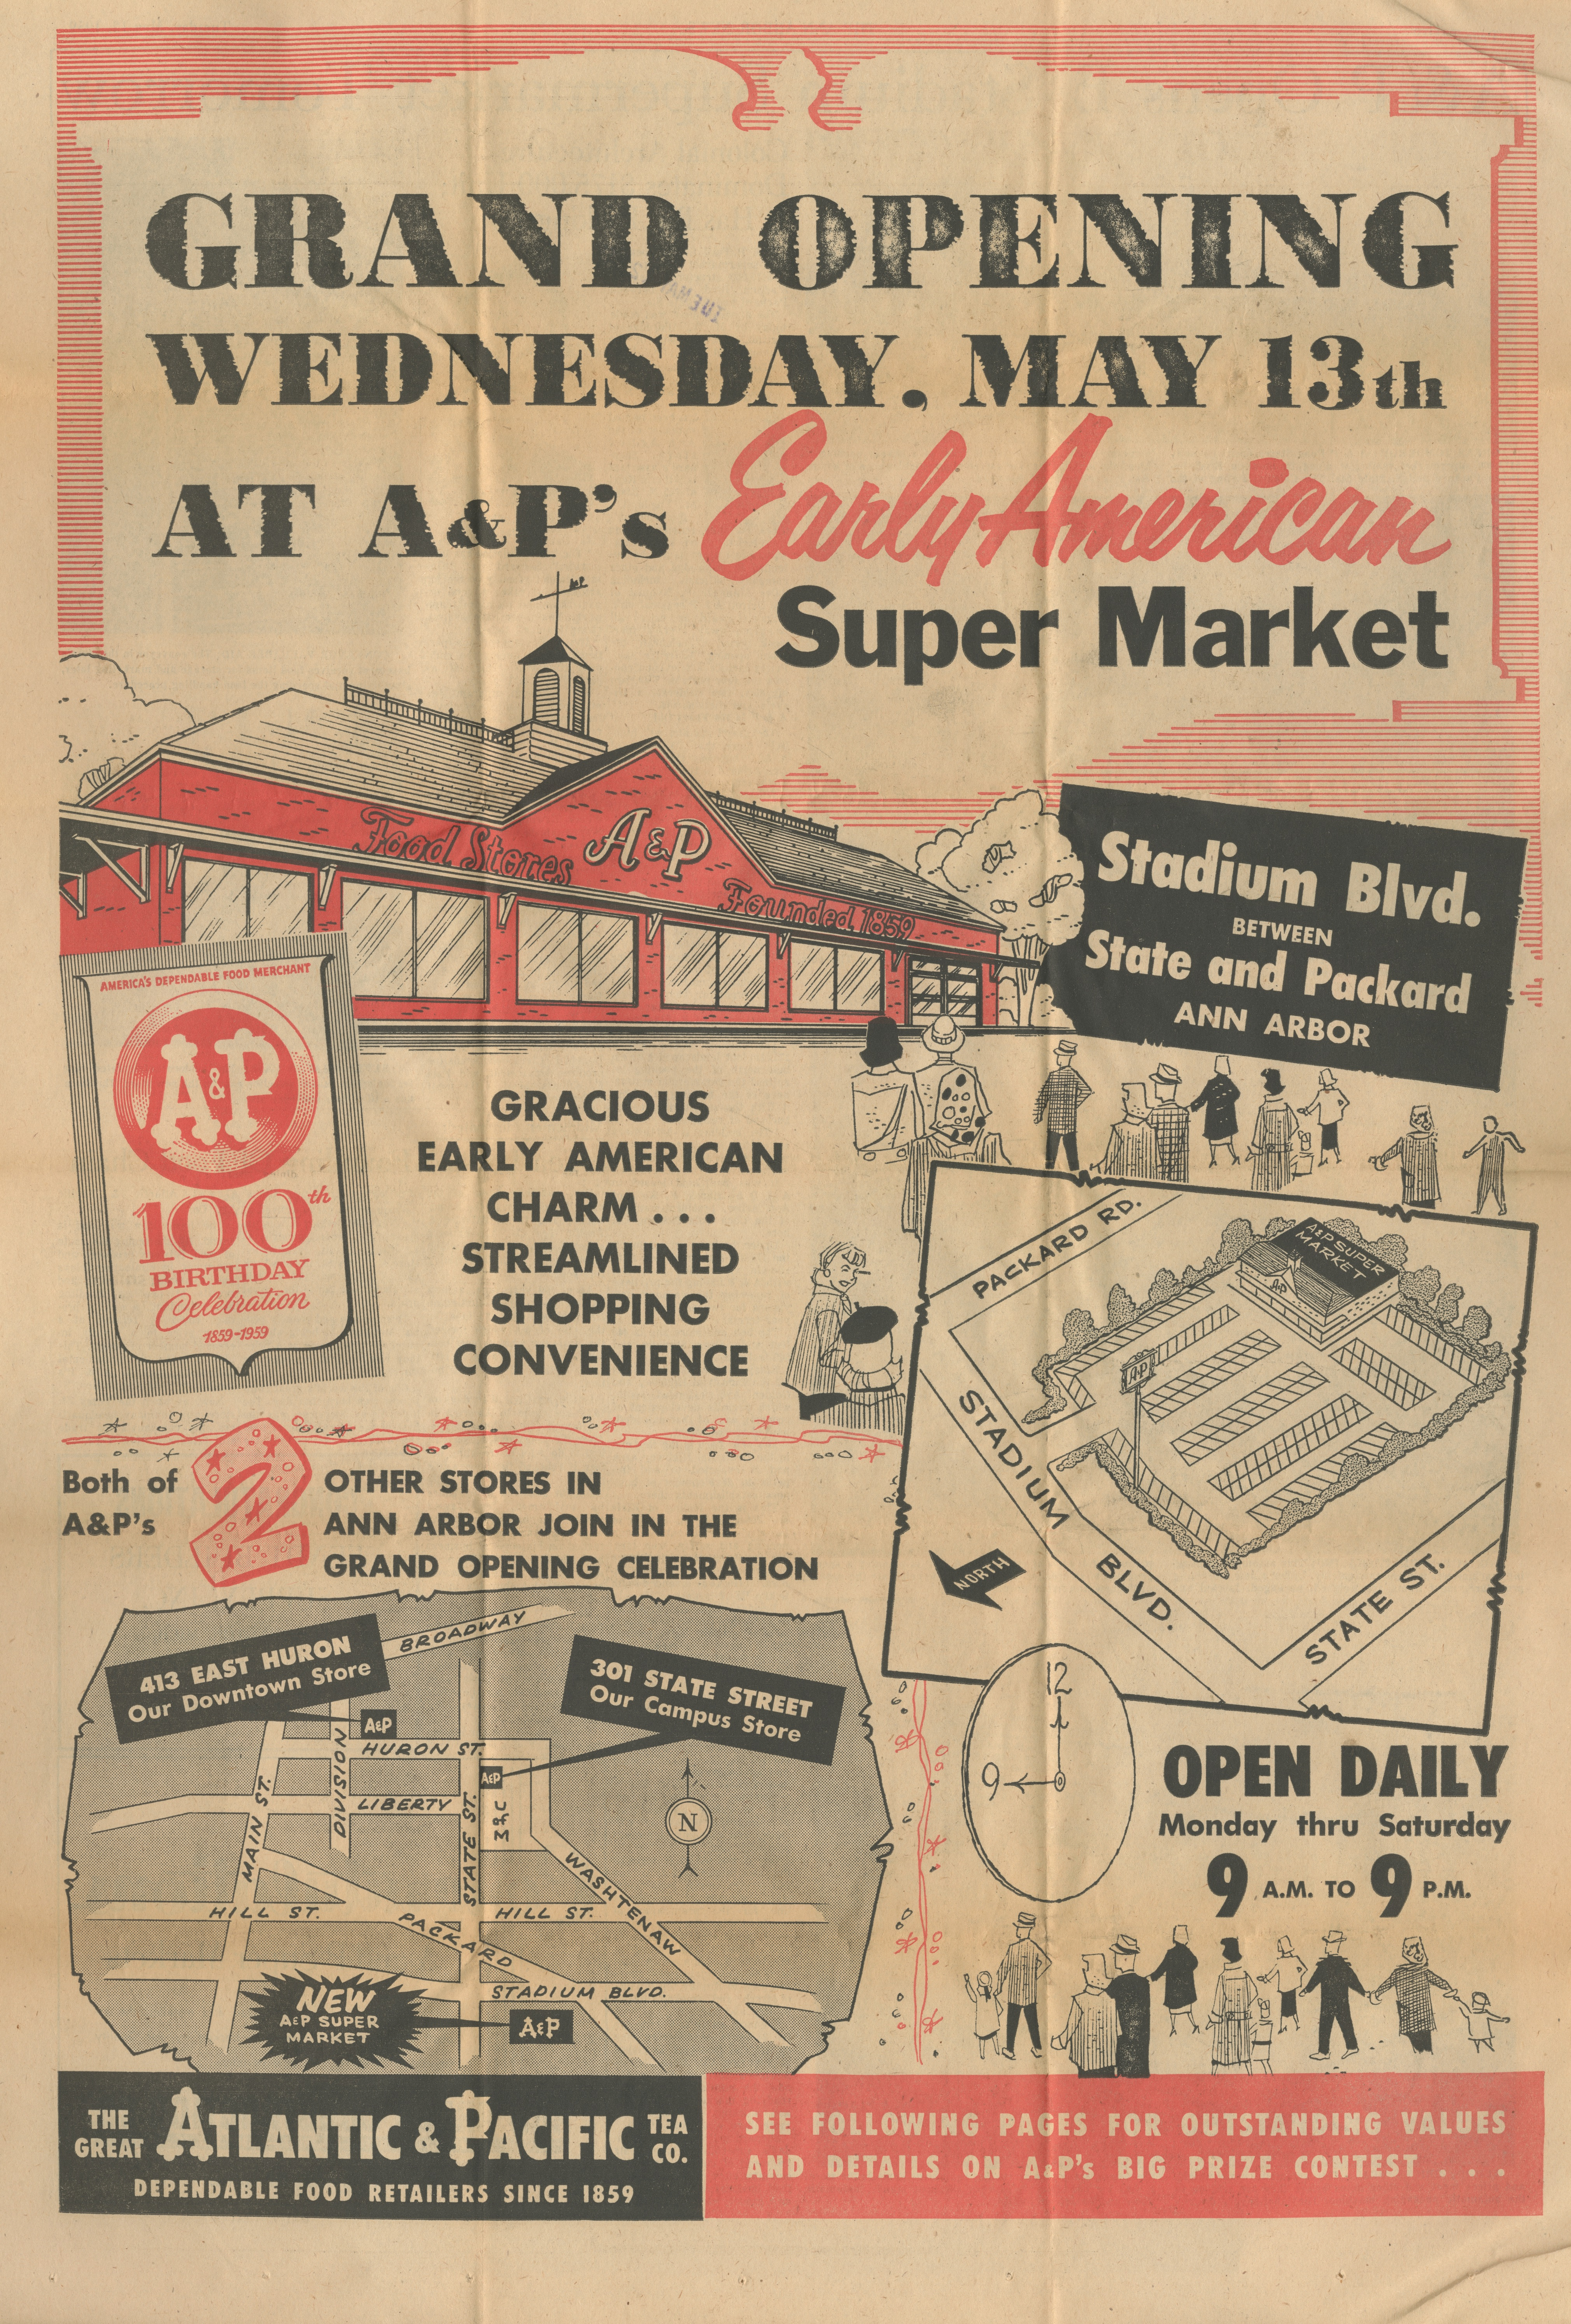 Grand Opening At A& P's Early American Super Market image